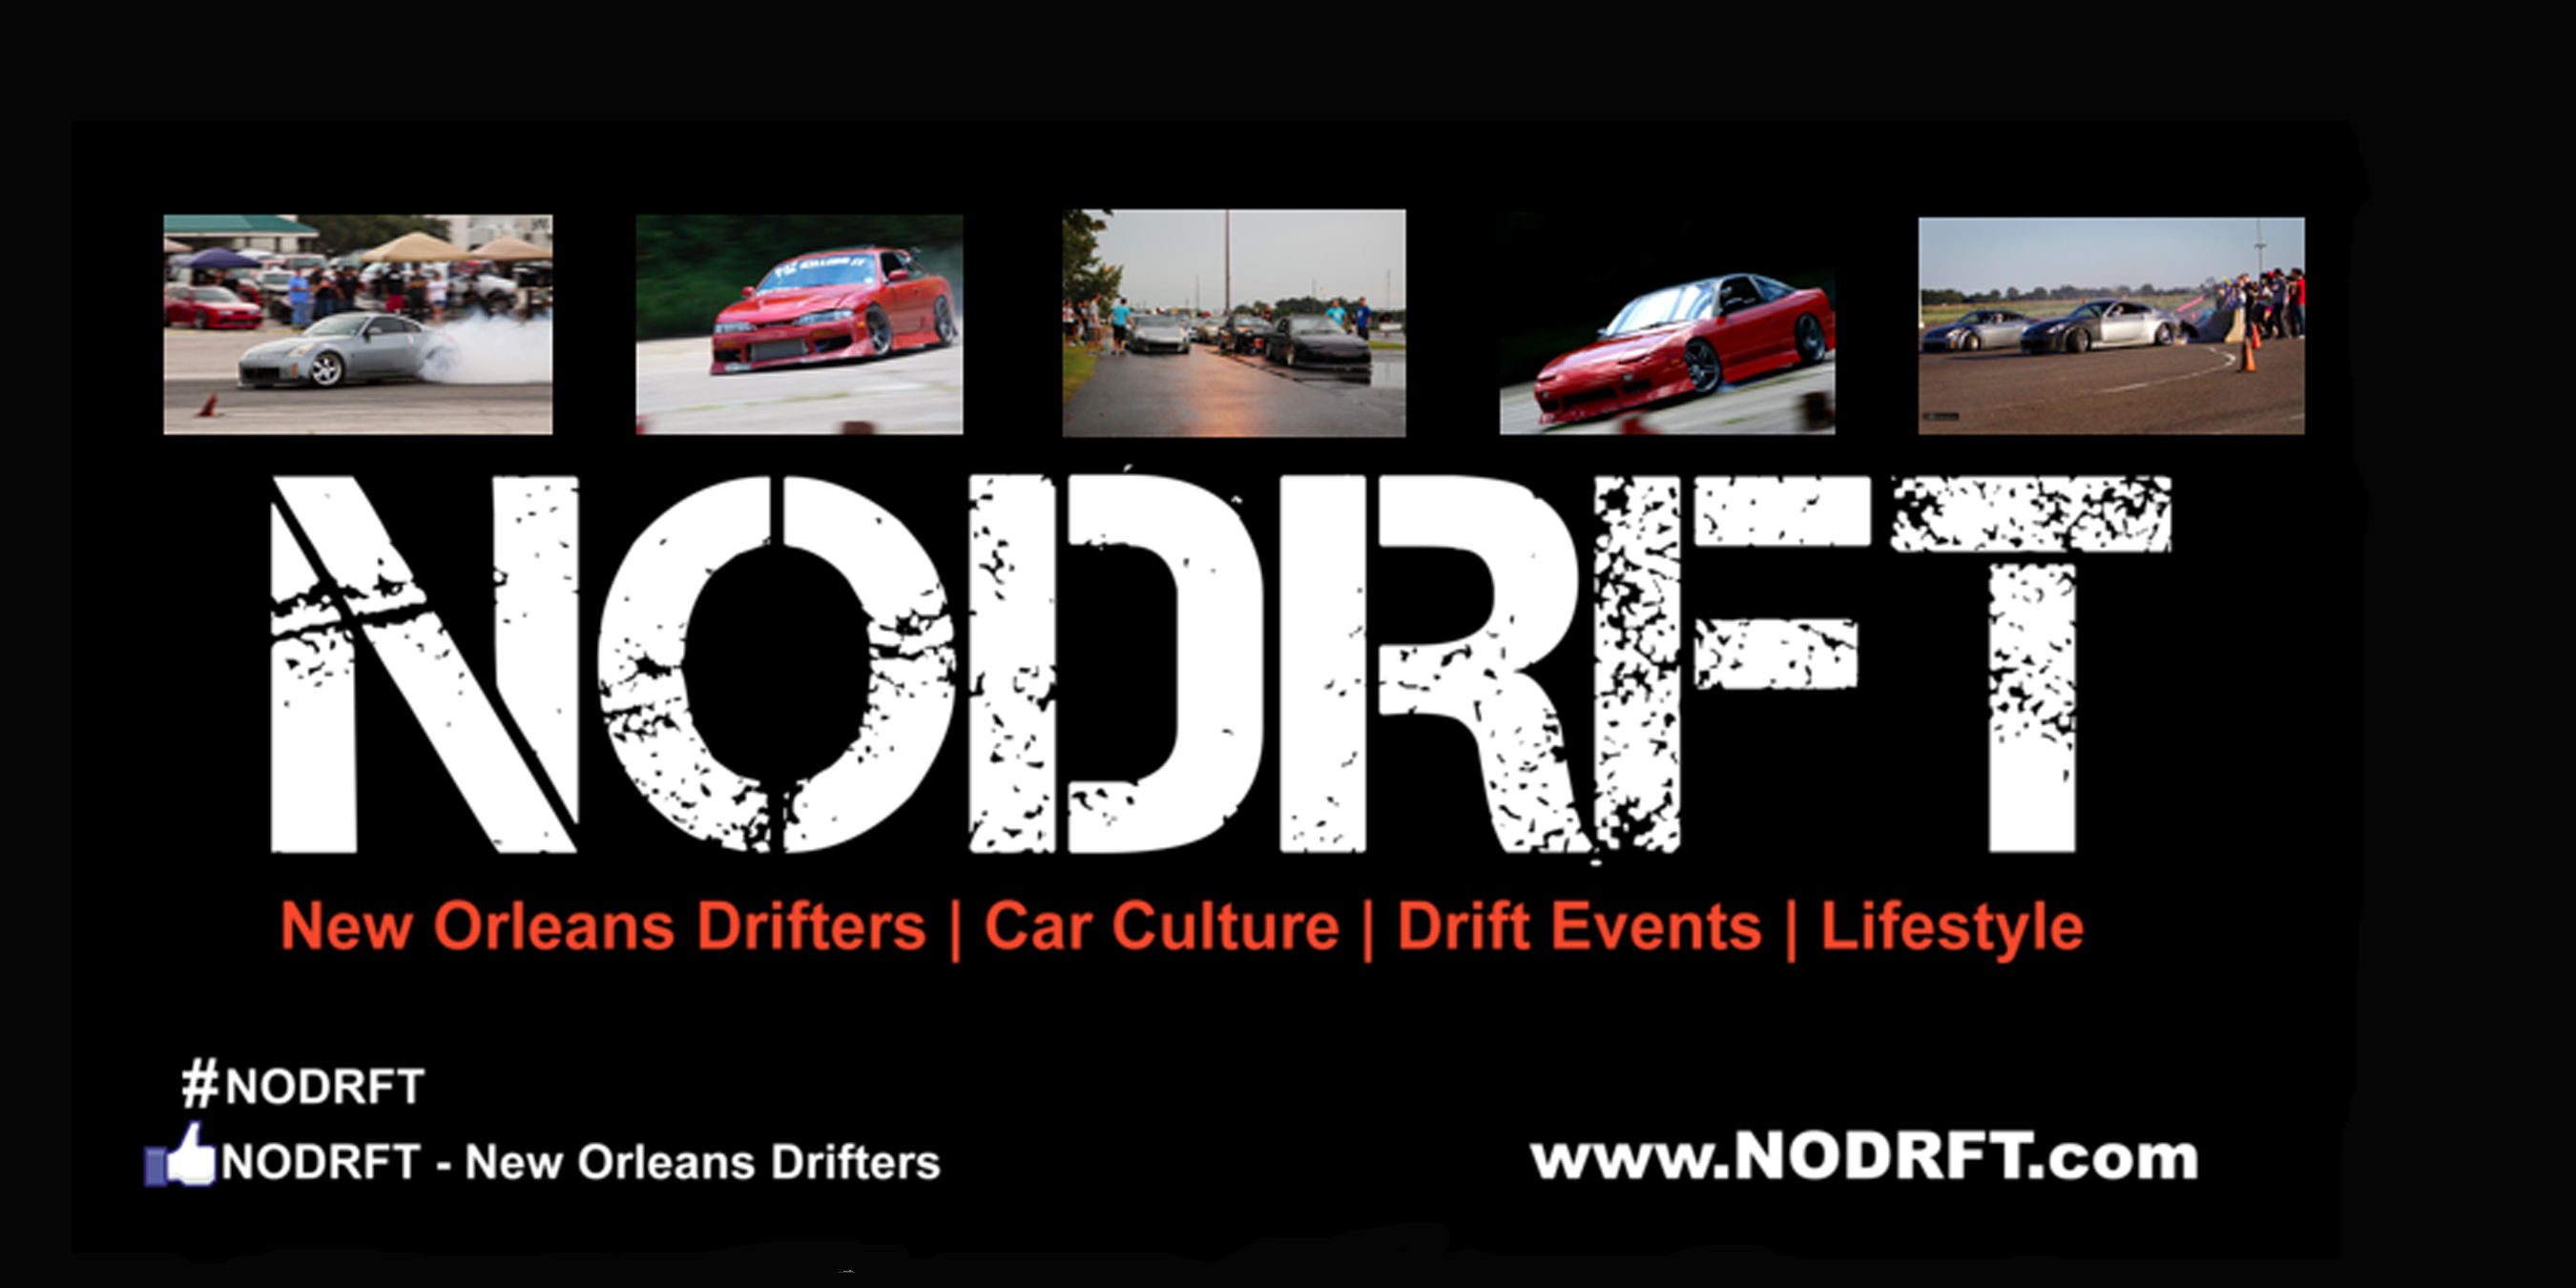 What is NODRFT?